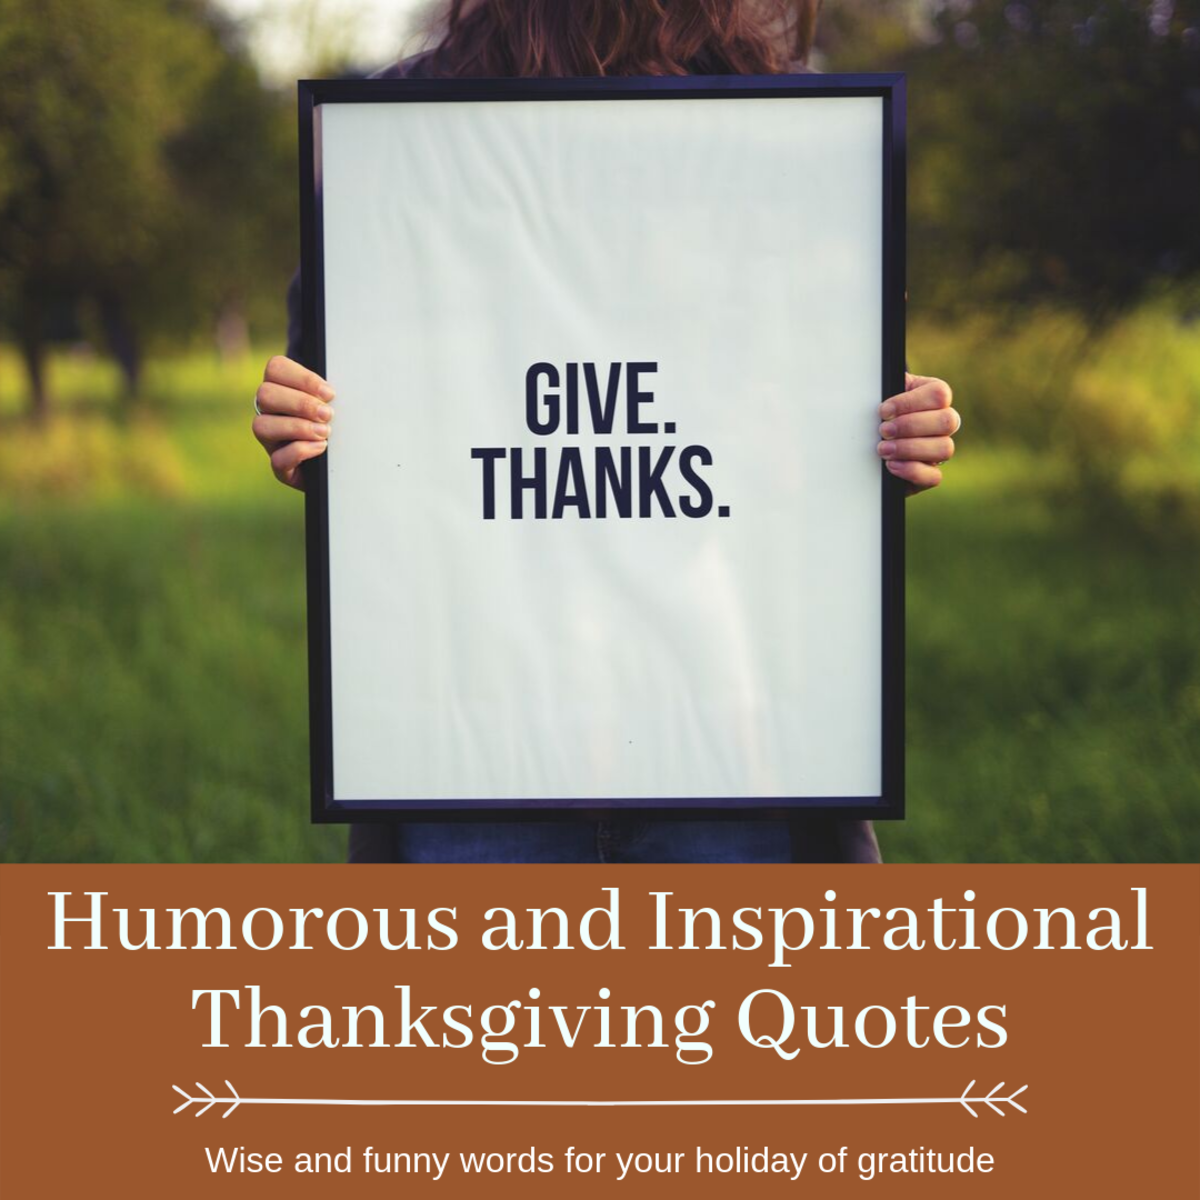 Read up on these funny and inspirational quotes about the holiday dedicated to being grateful and giving back.